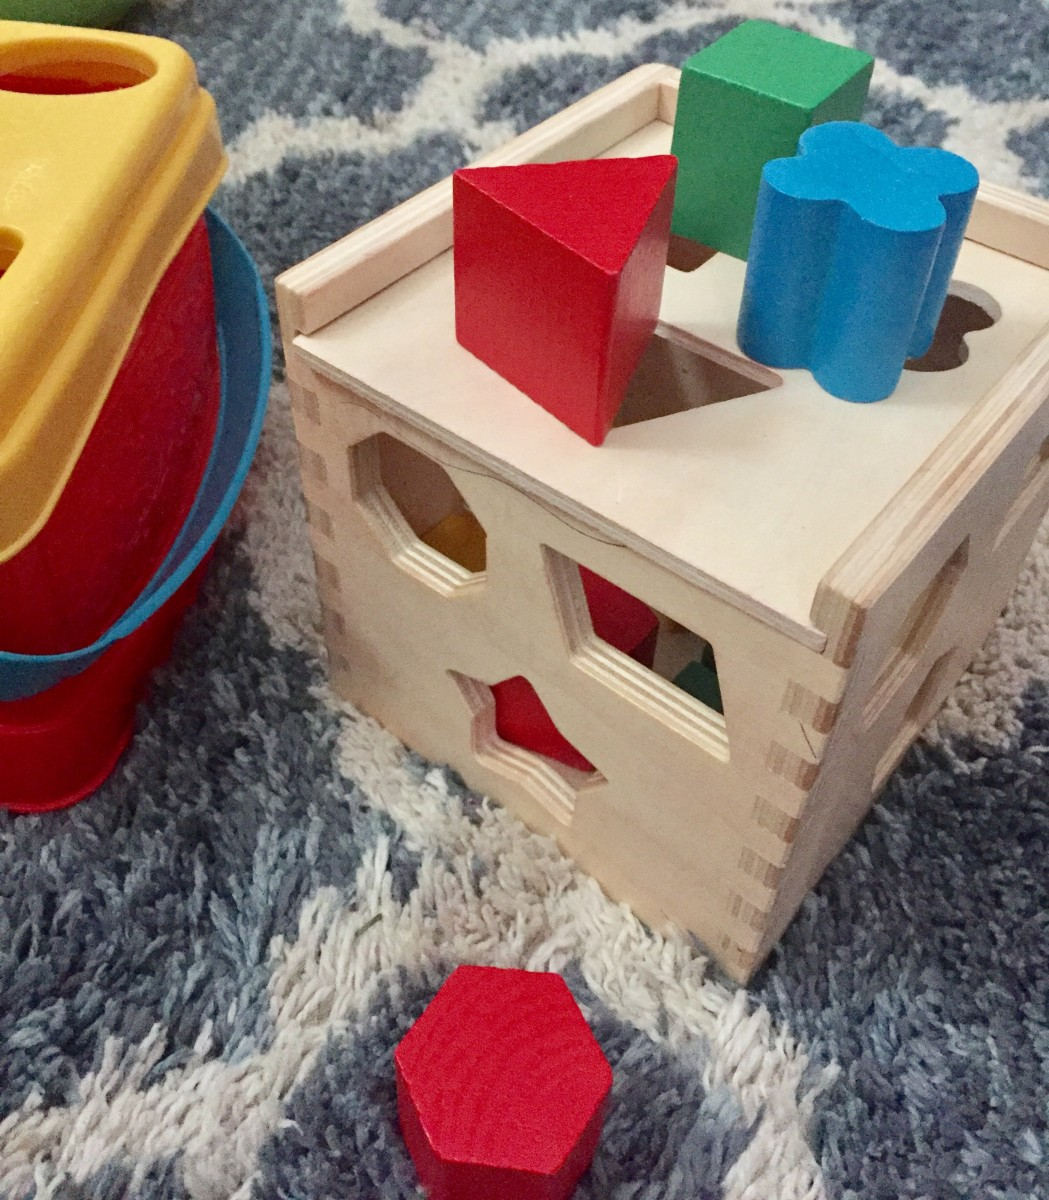 shape-sorting-toys